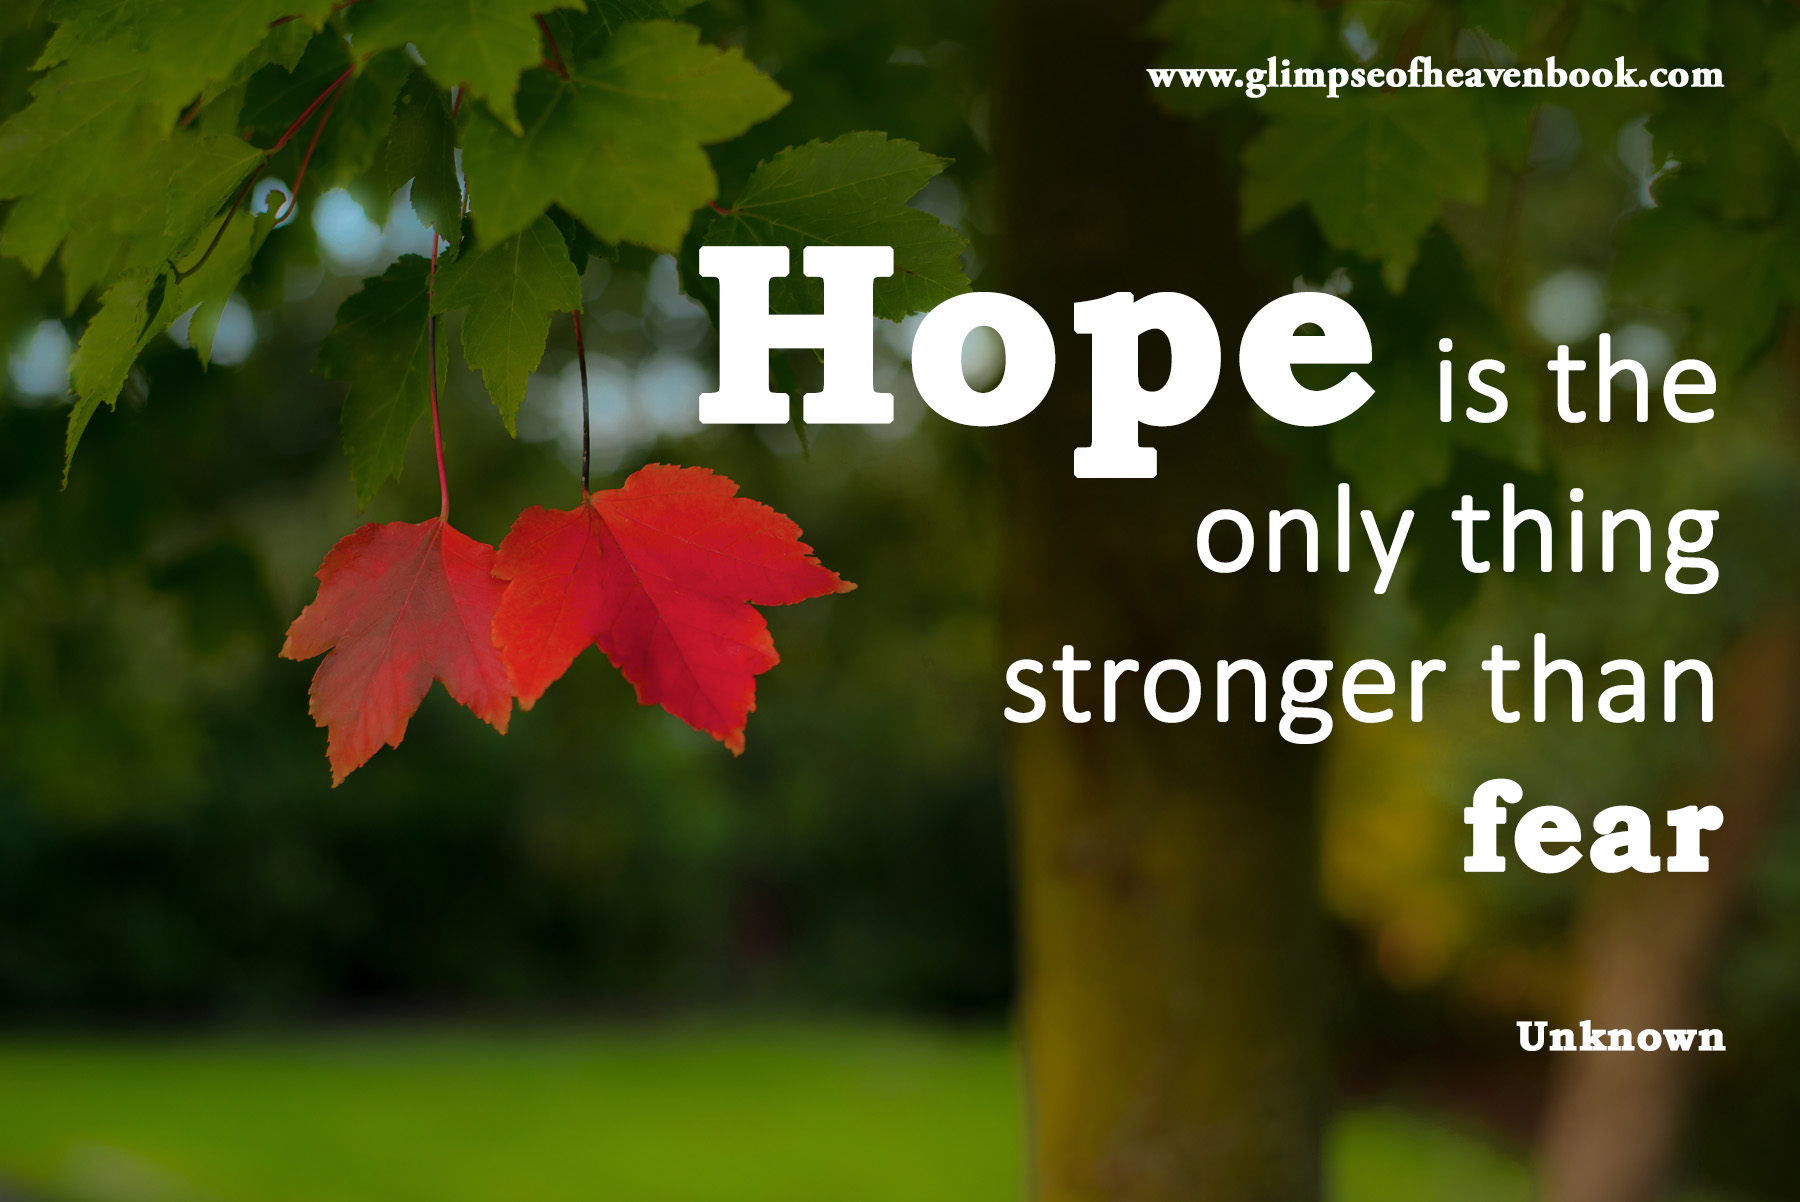 hope-is-the-only-thing-stronger-than-fear-lonely-1784160